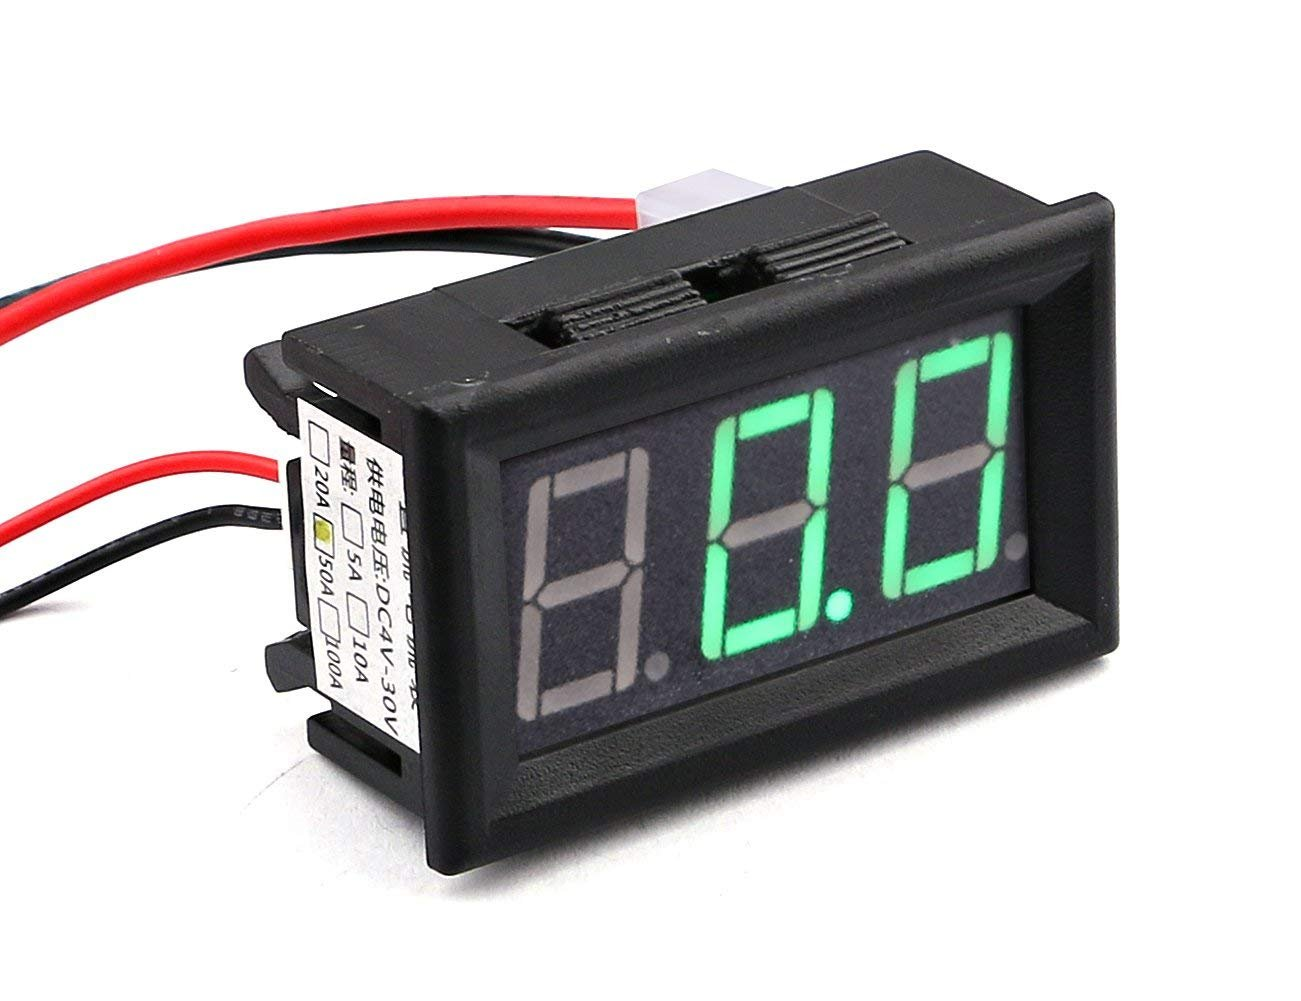 'Yeeco 3 Digits 0,56 Verde LED High Precision DC digitale amperometro amp Panel Meter 0 – 50 a Current Meter Ampere Monitor Tester indicatore 4 – 30 V Powered con Shunt 'Yeeco 3 Digits 0